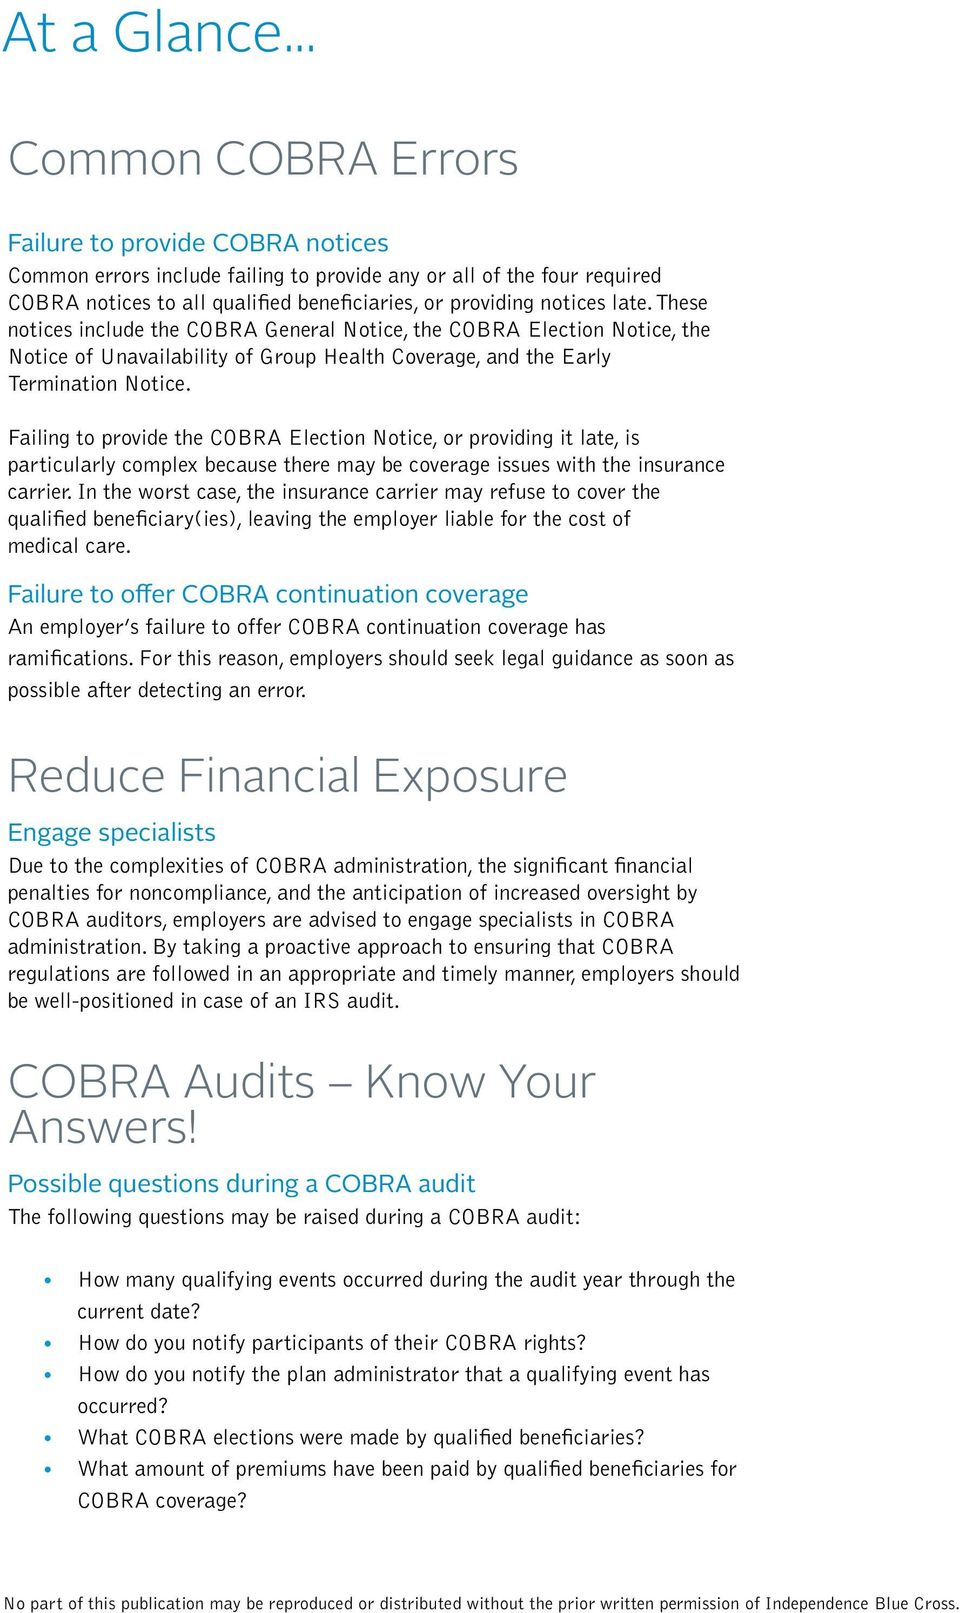 These notices include the COBRA General Notice, the COBRA Election Notice, the Notice of Unavailability of Group Health Coverage, and the Early Termination Notice.